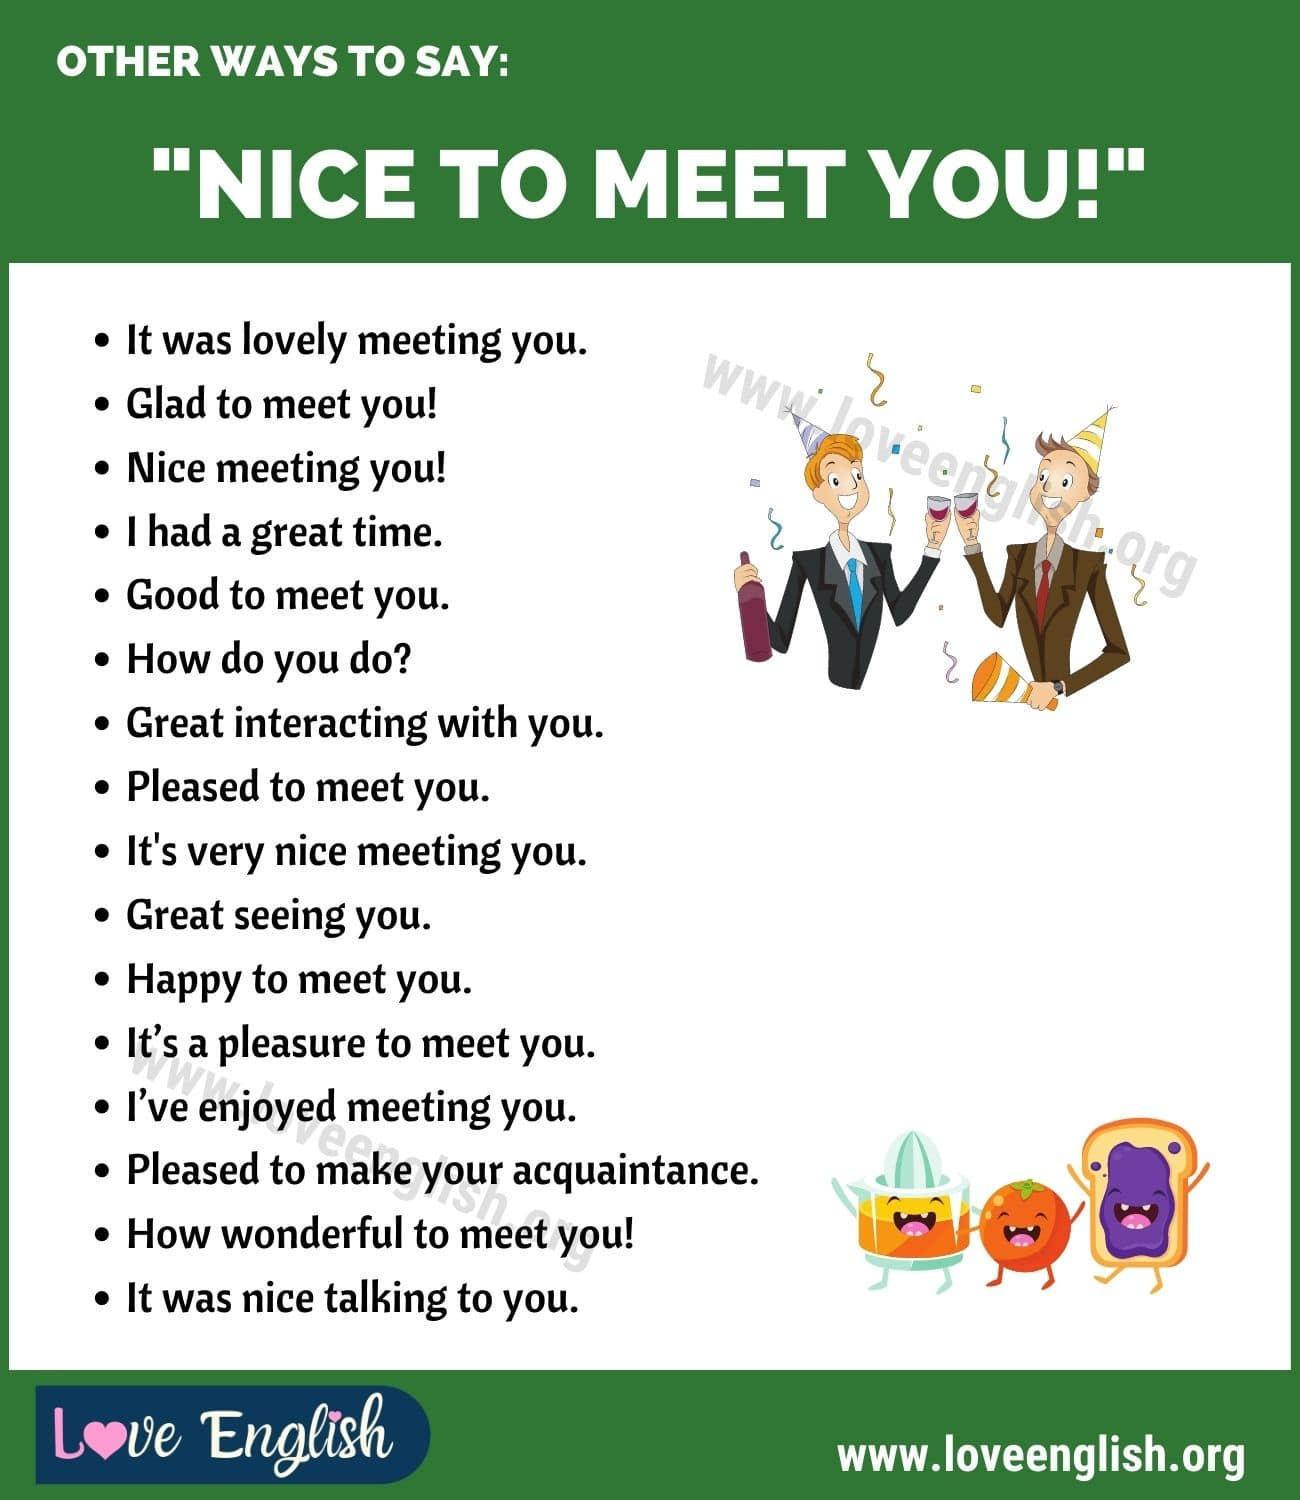 Ways to Say Nice to Meet You